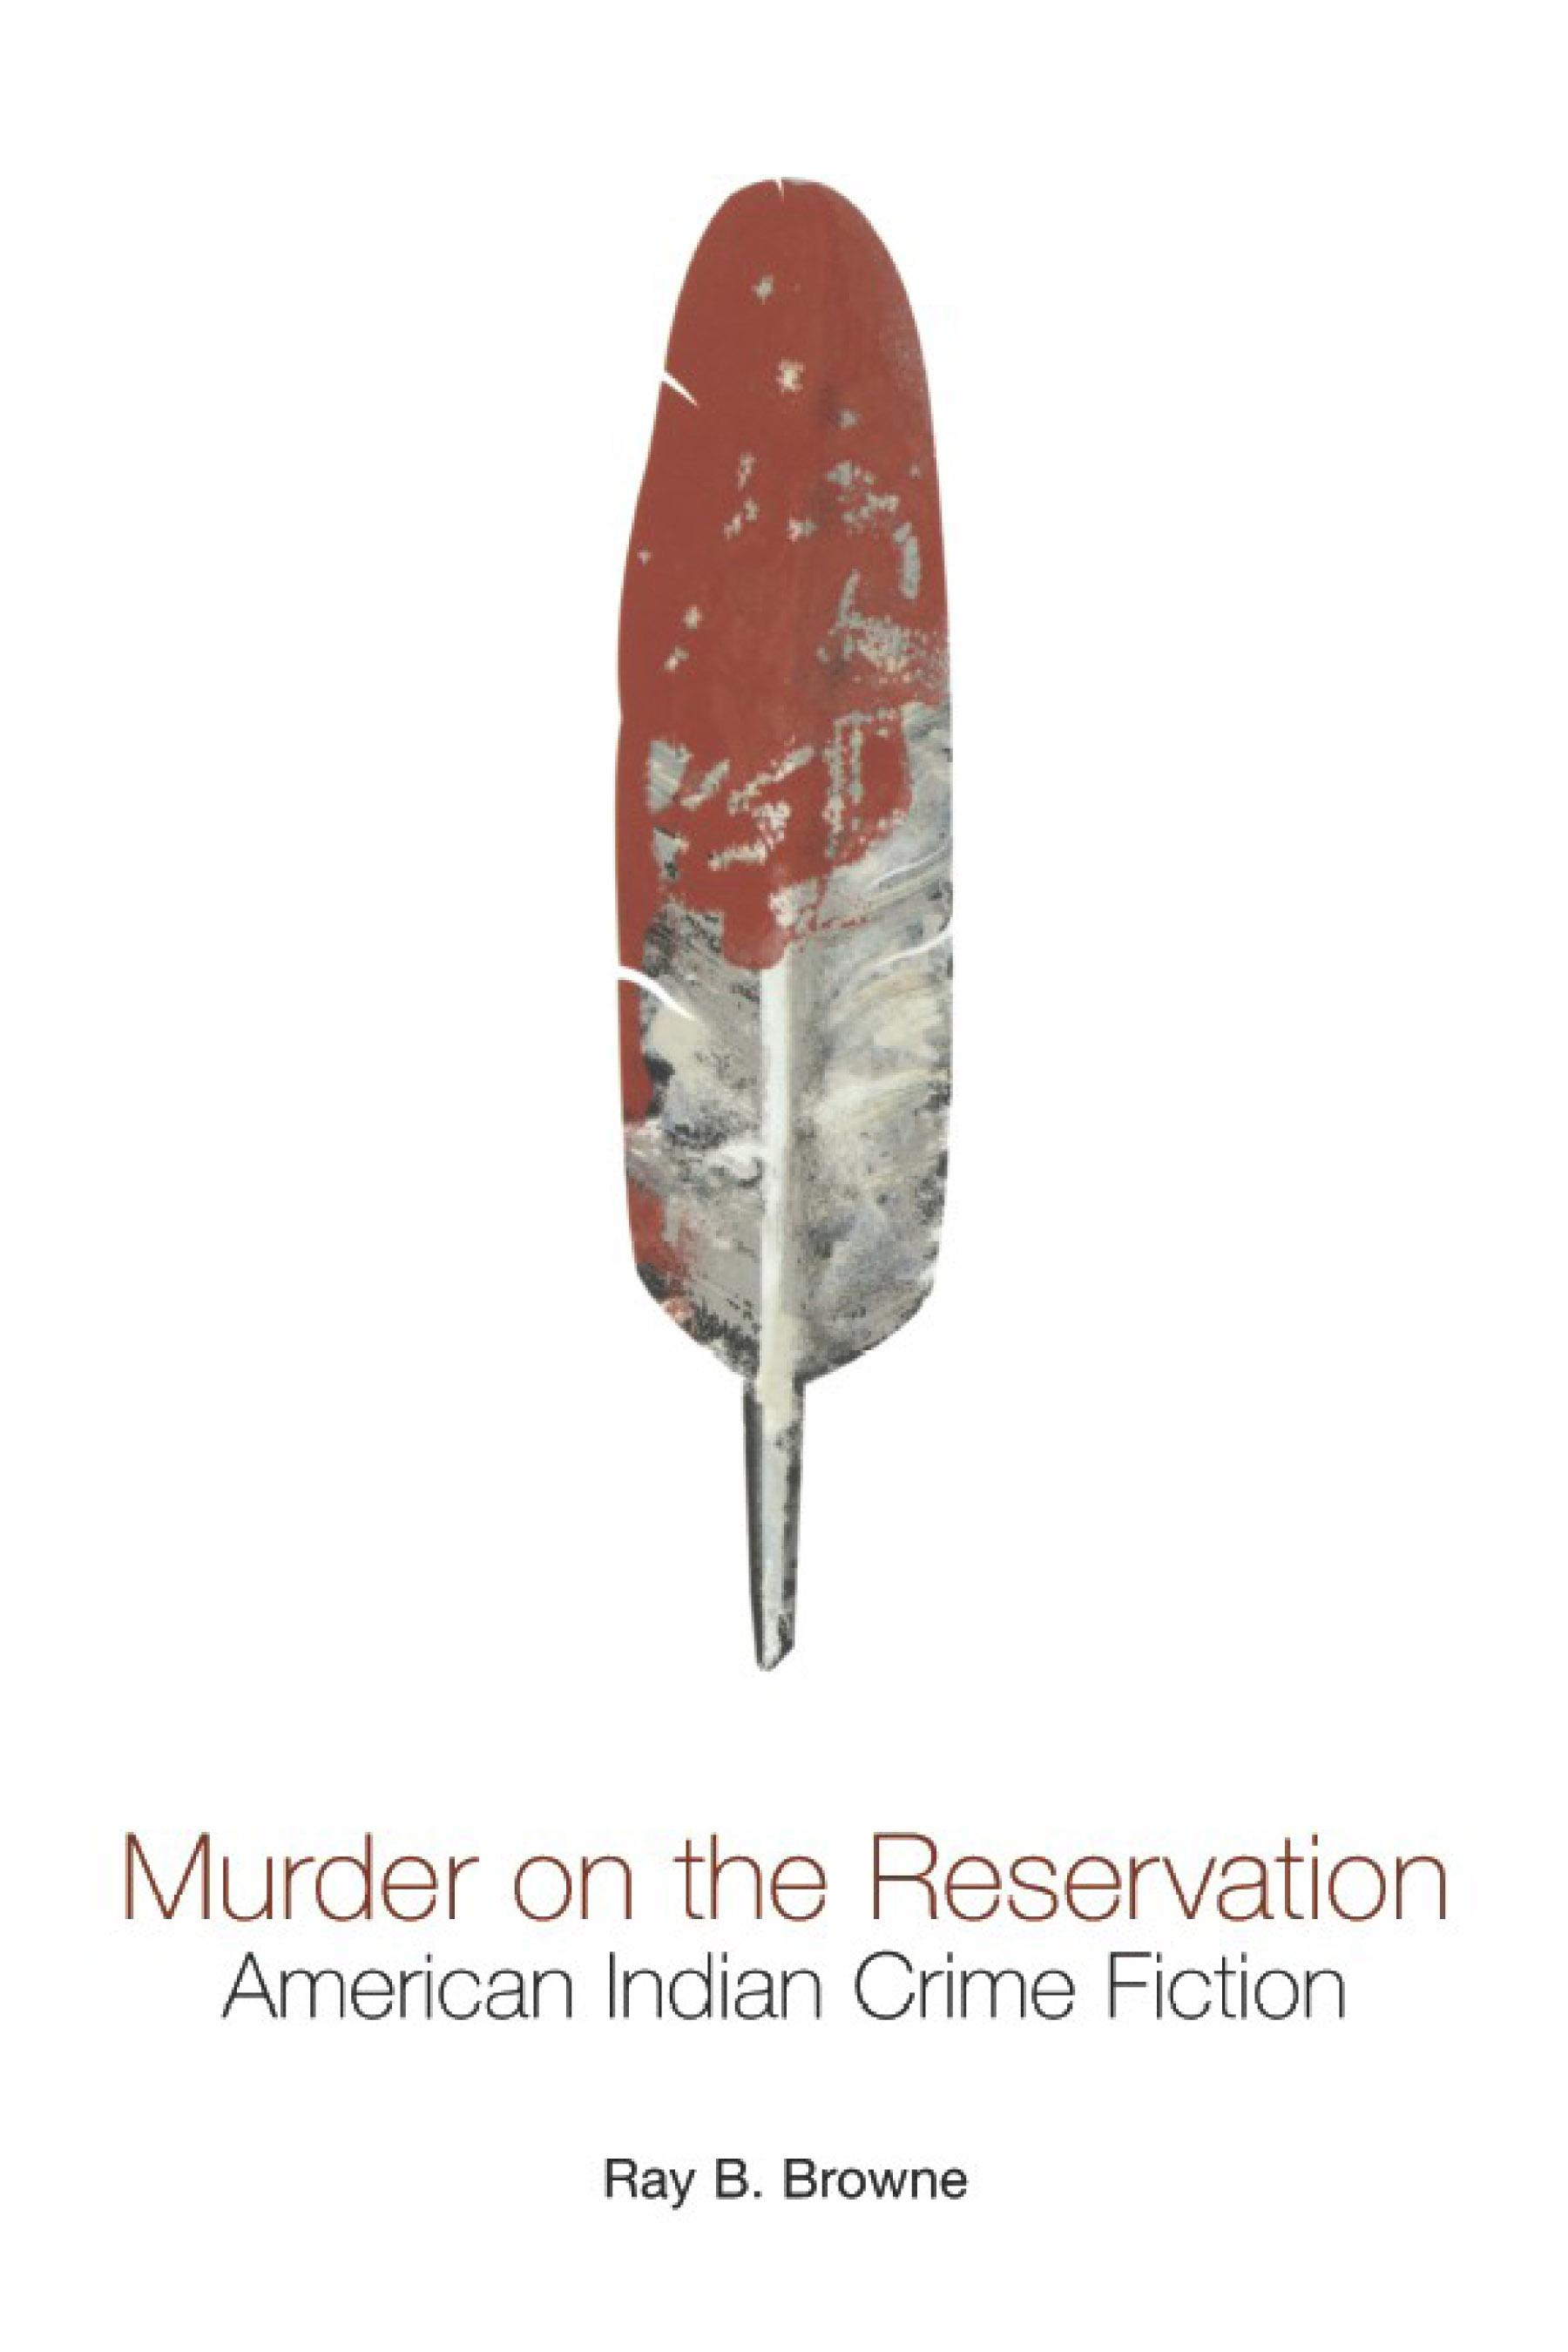 Murder on the Reservation: American Indian Crime Fiction